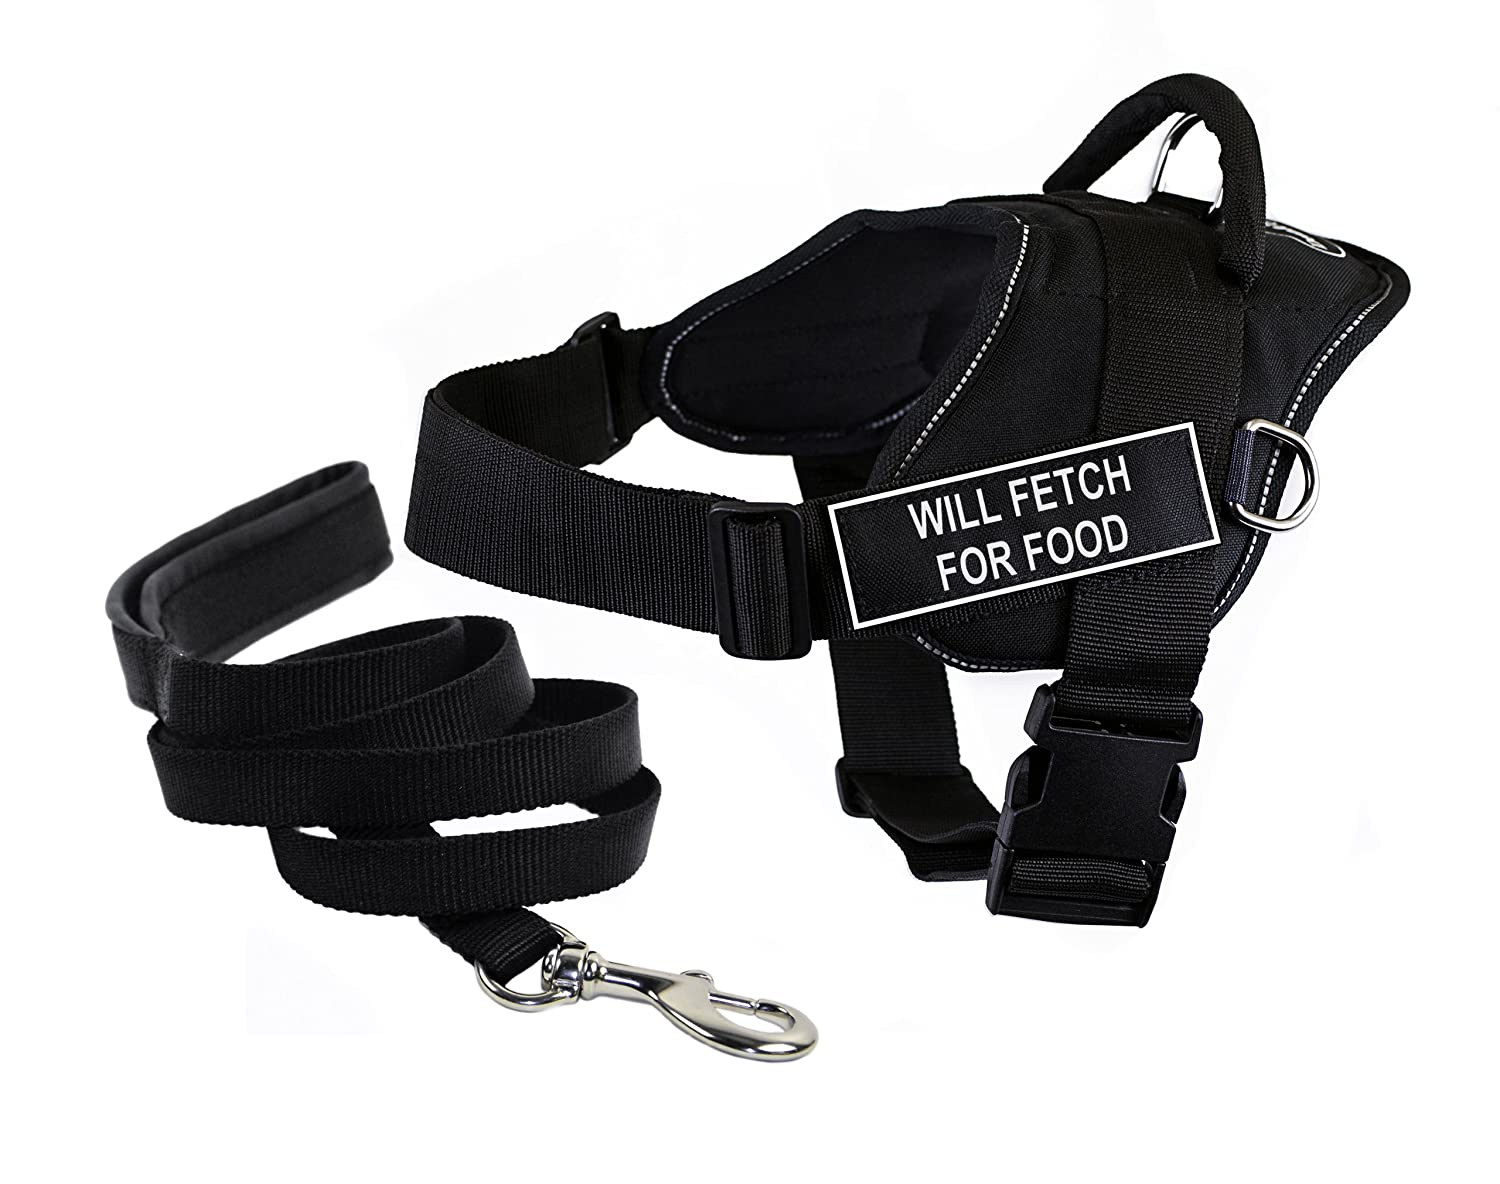 Dean & Tyler's DT Fun WILL FETCH FOR FOOD Harness with Reflective Trim, Large, And 6 ft Padded Puppy Leash.